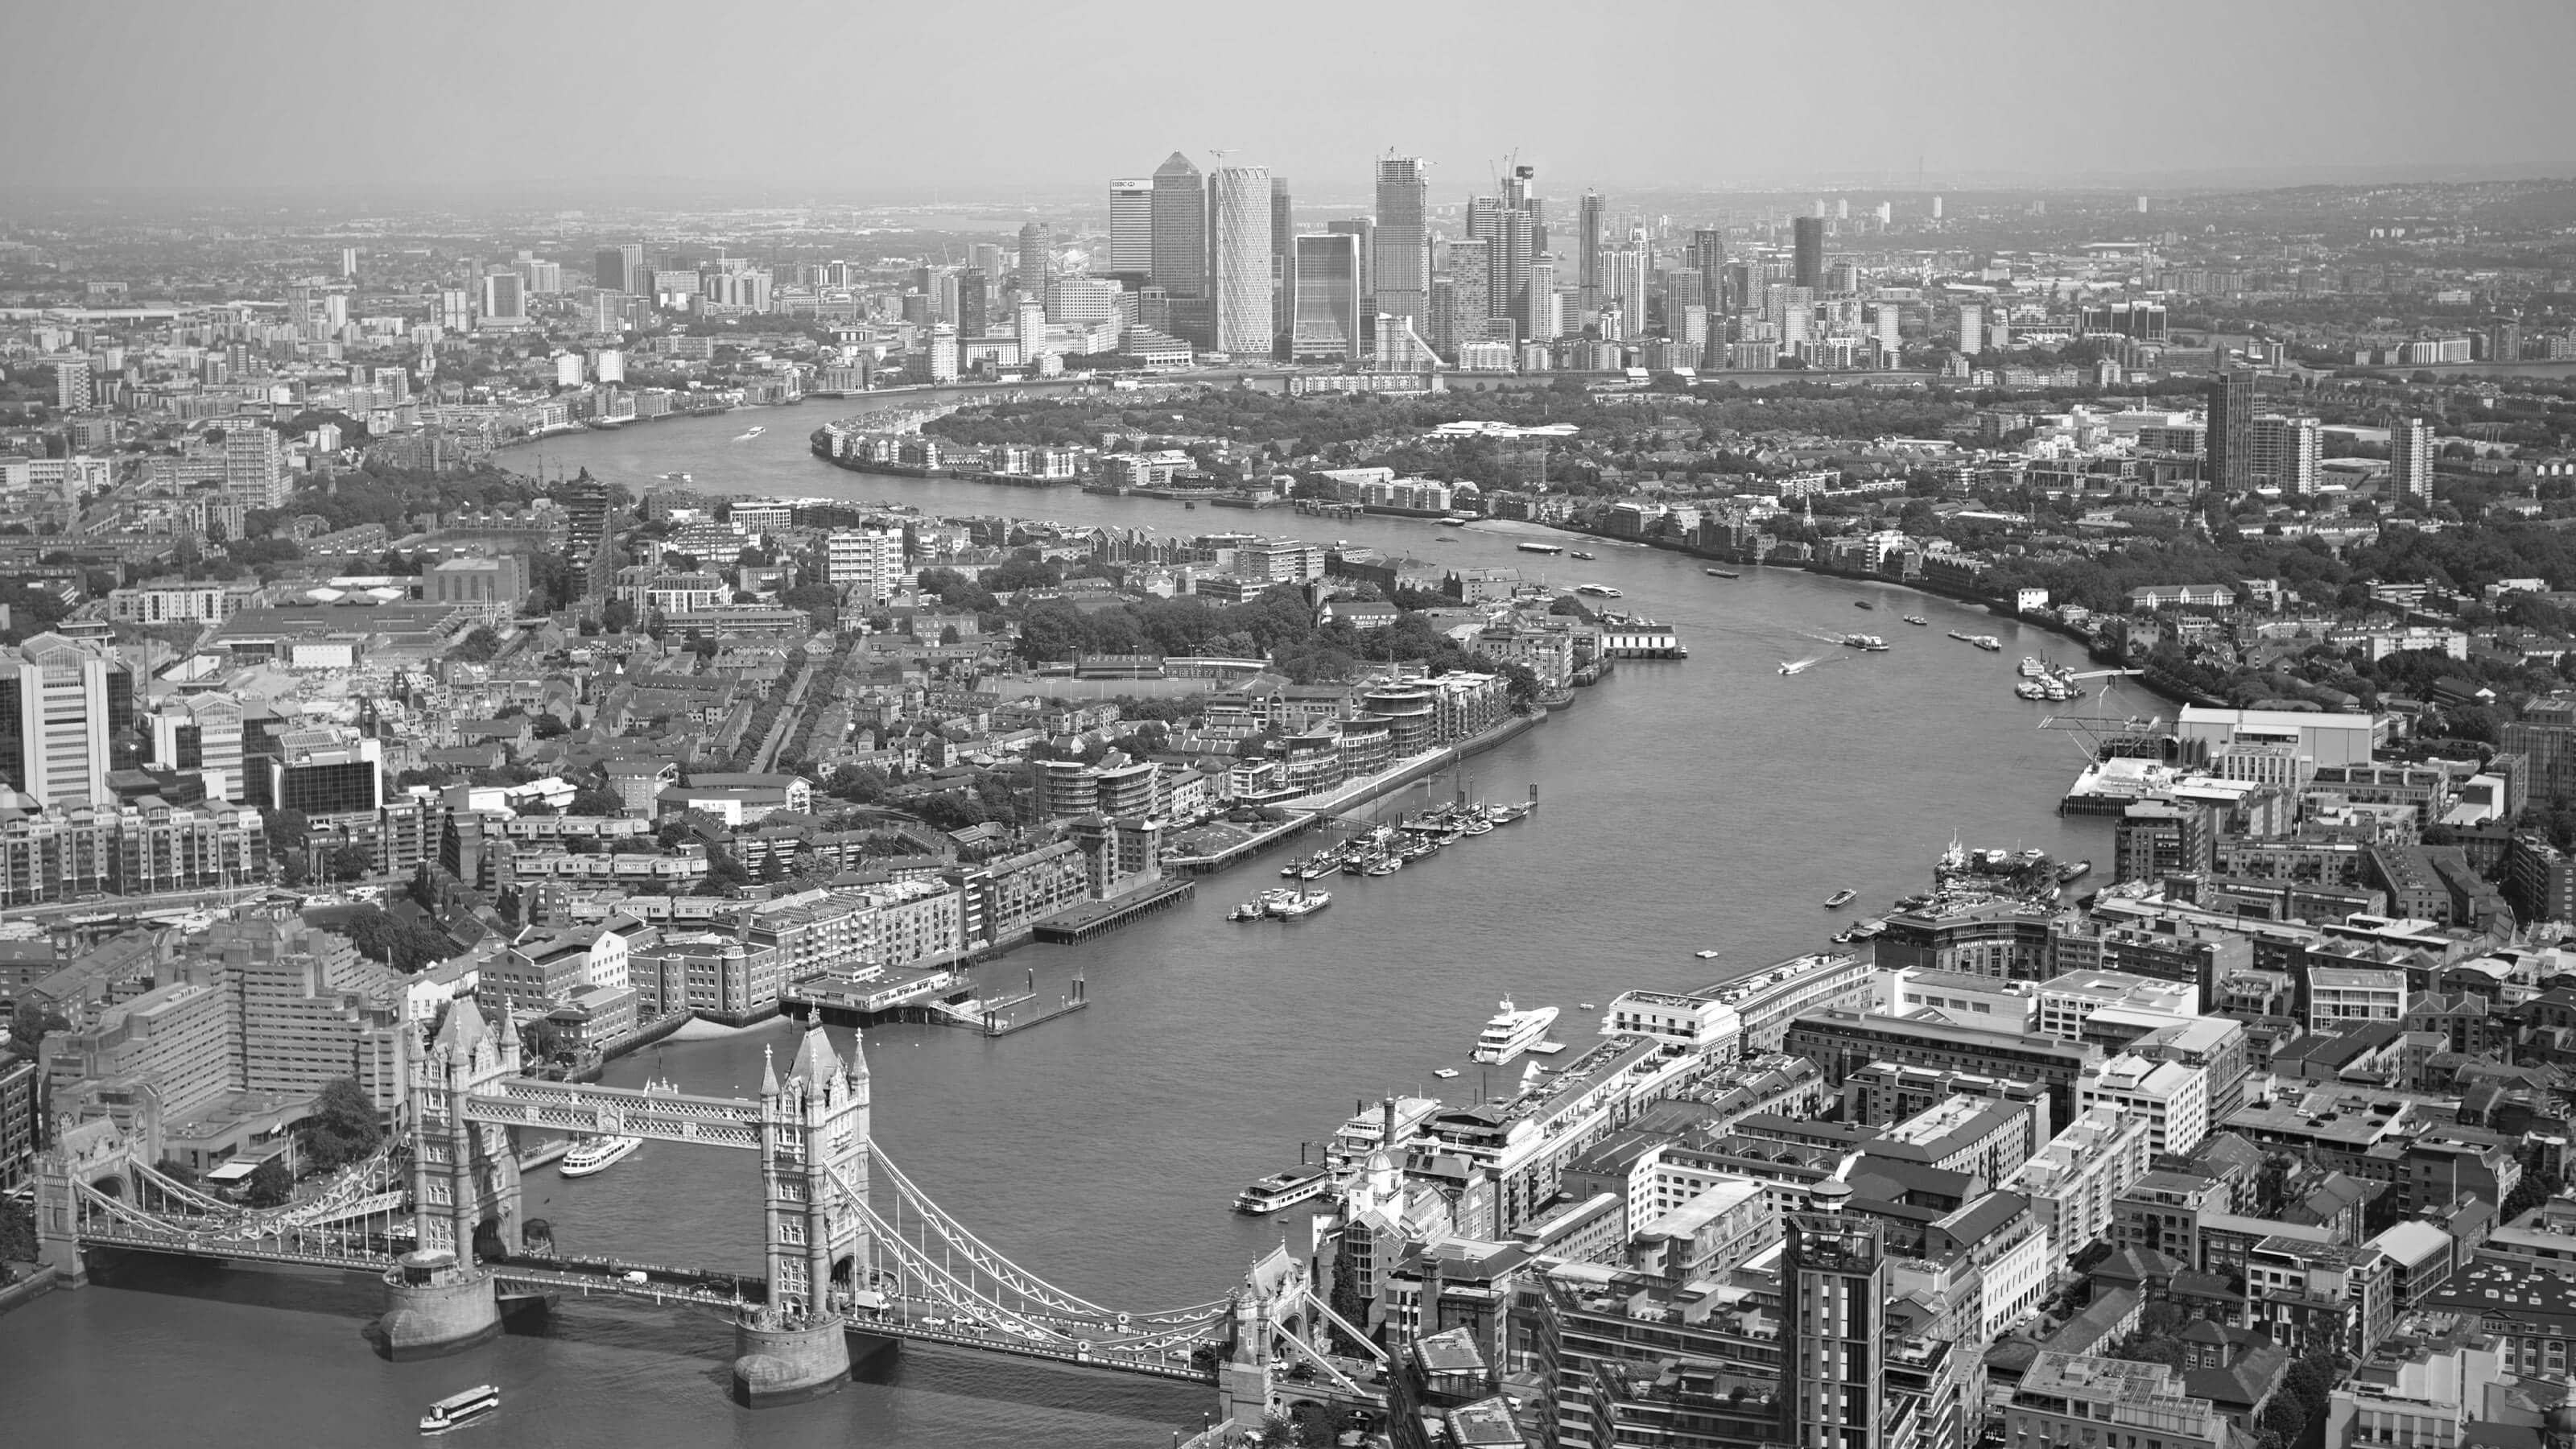 London skyline looking out over the thames. View shows Tower bridge and the city in the distance